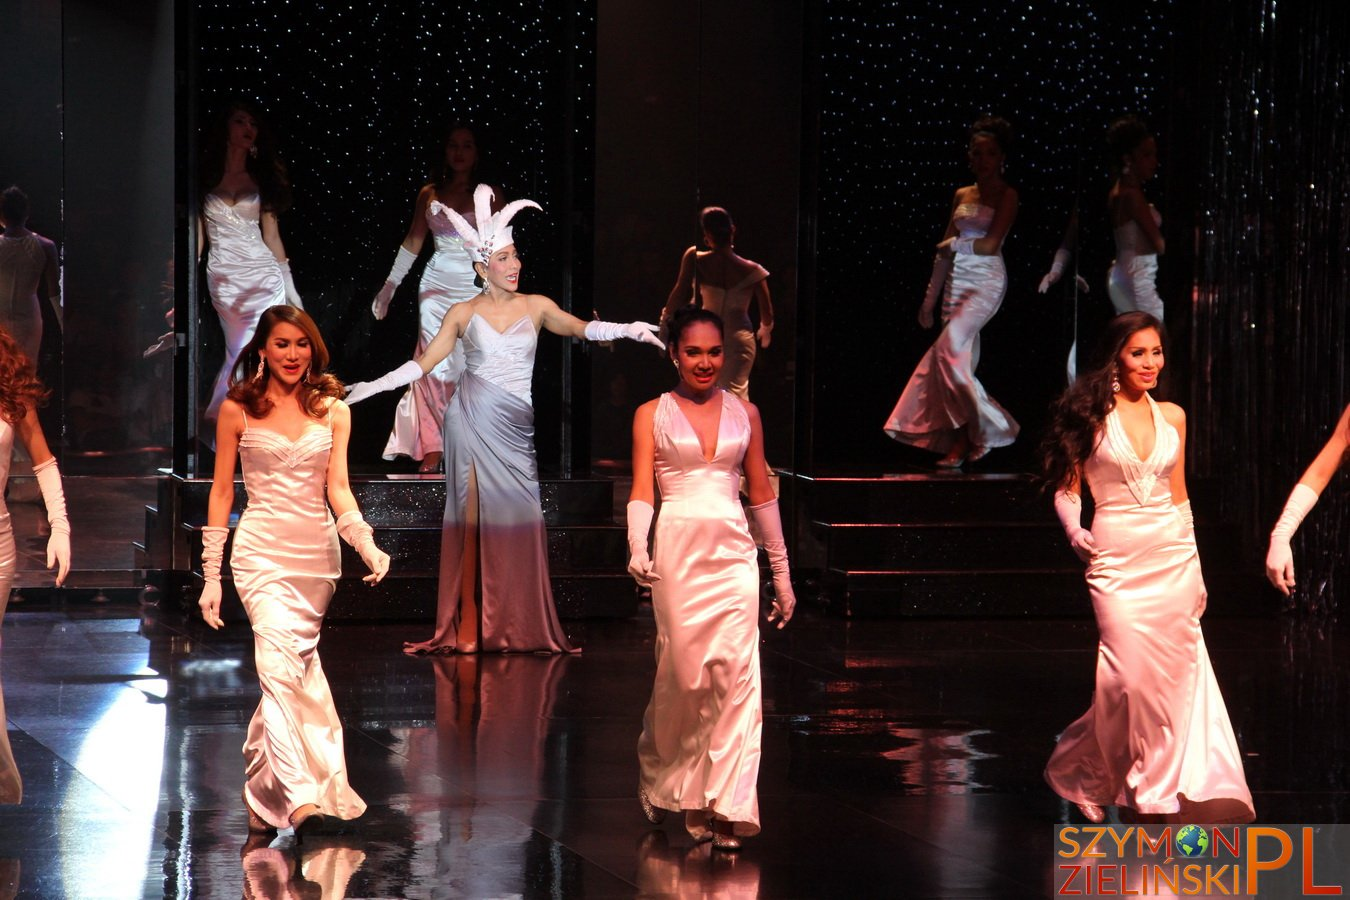 Calypso Show 2013 - Bangkok, Thailand - photos and review - zdjęcia i opis